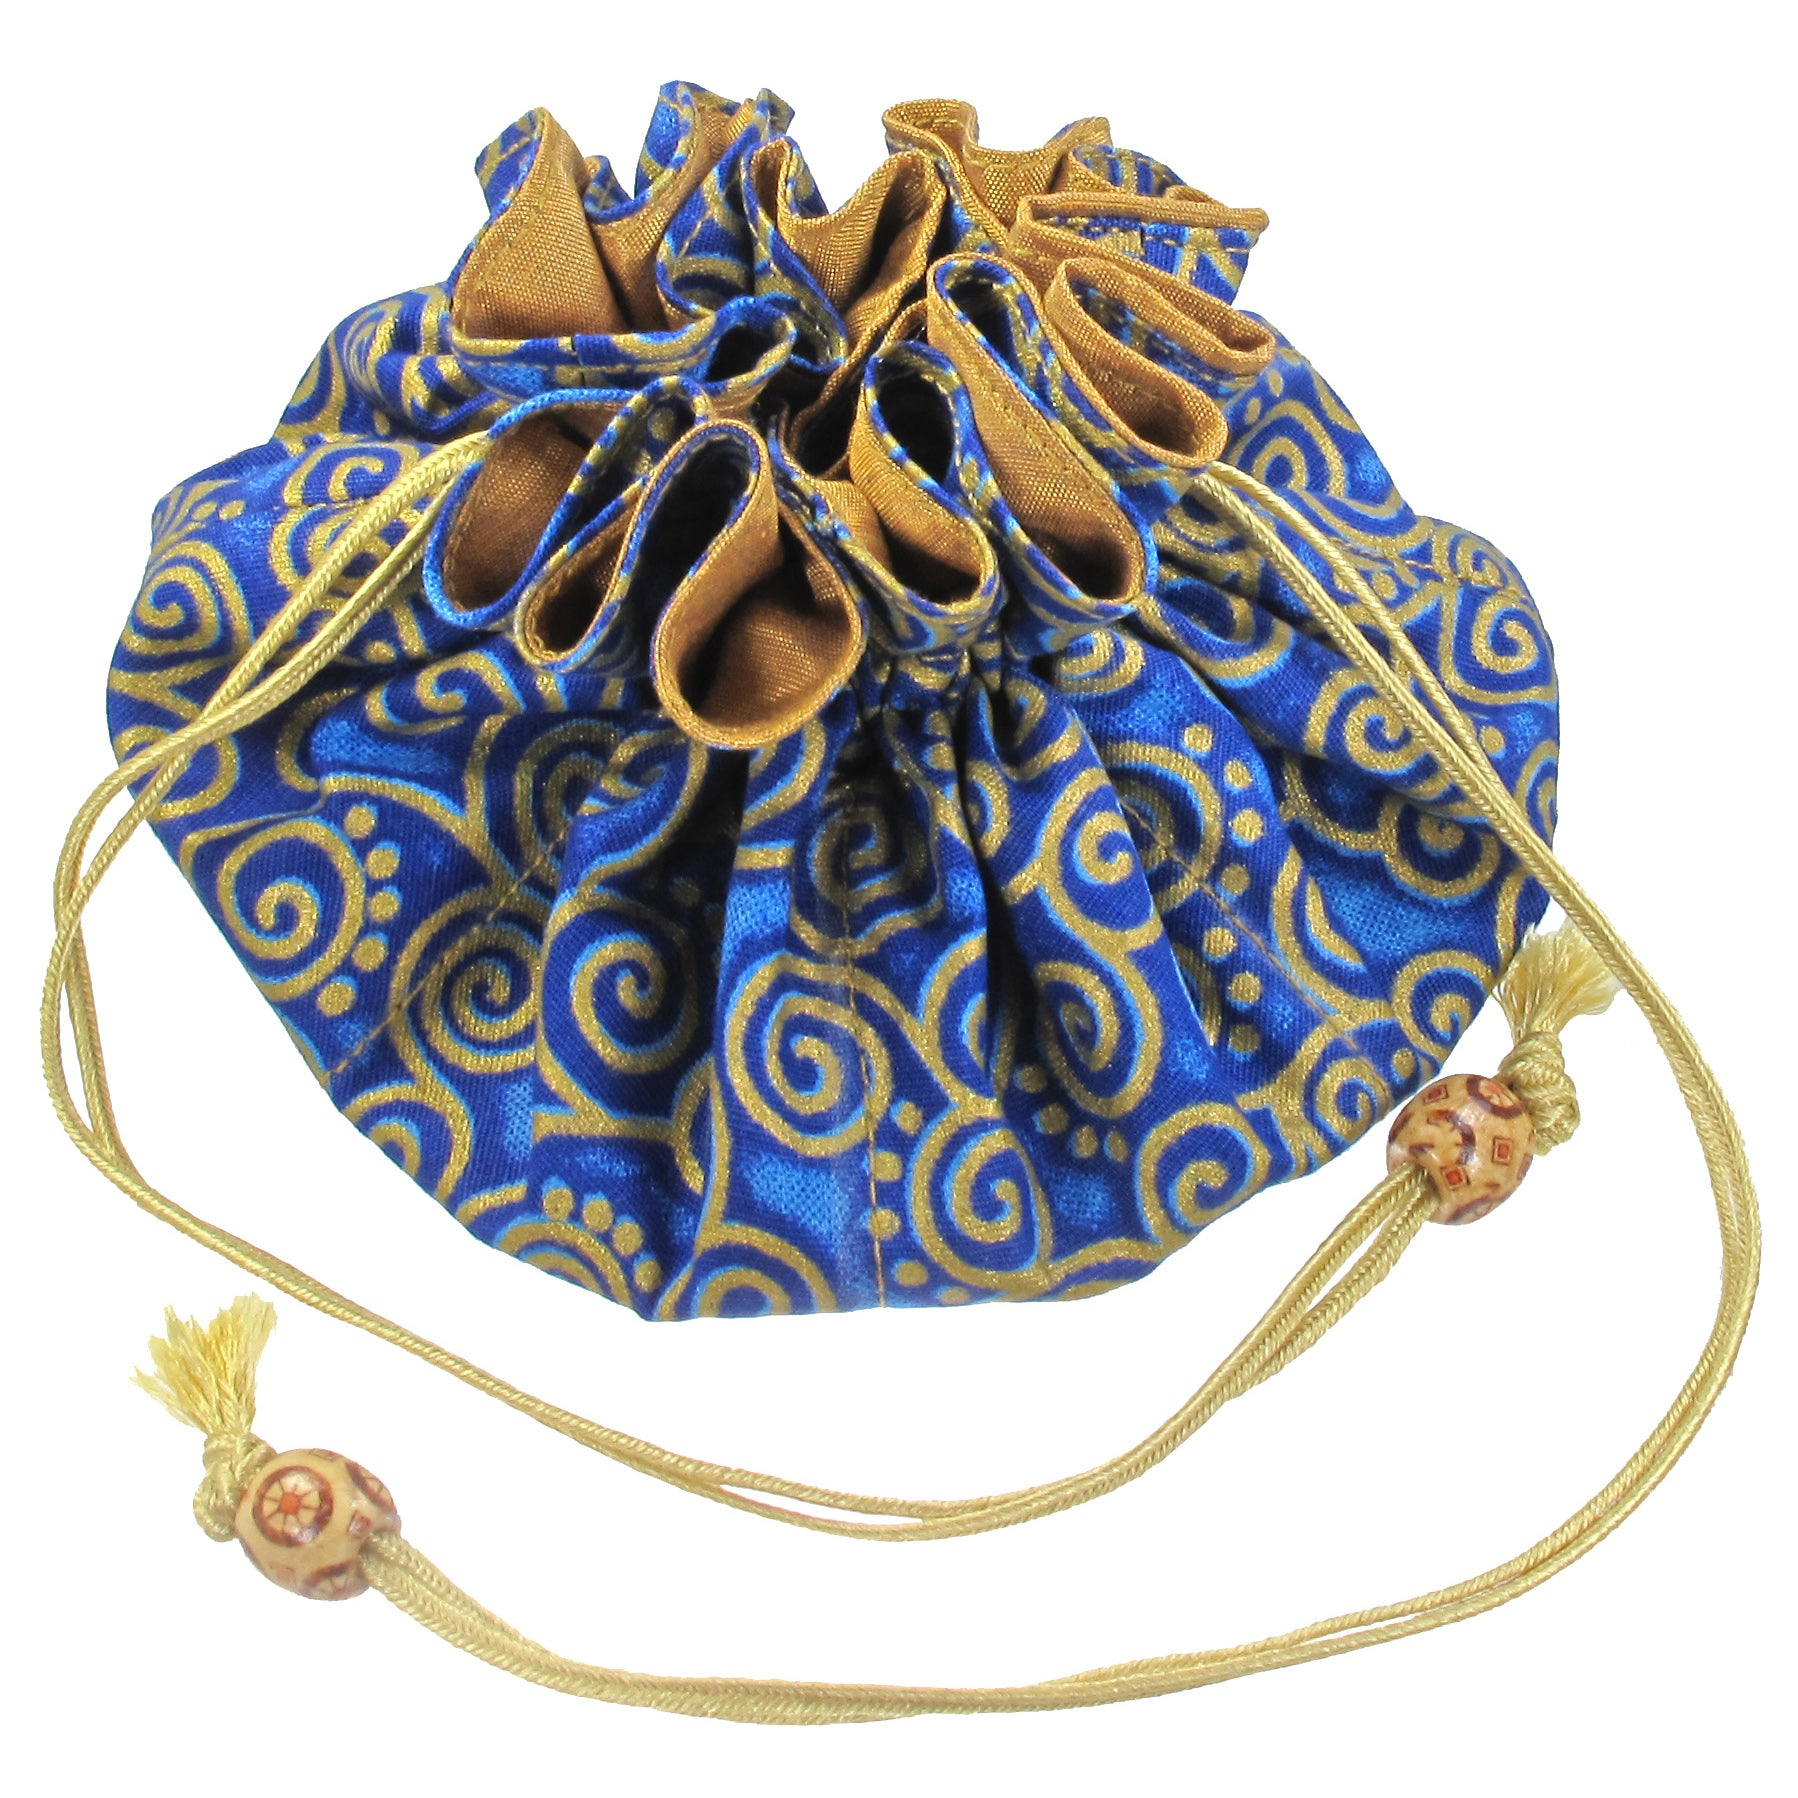 Handmade Drawstring Jewelry Pouch, 8 Pockets, Cotton, Cobalt with Gold Swirls